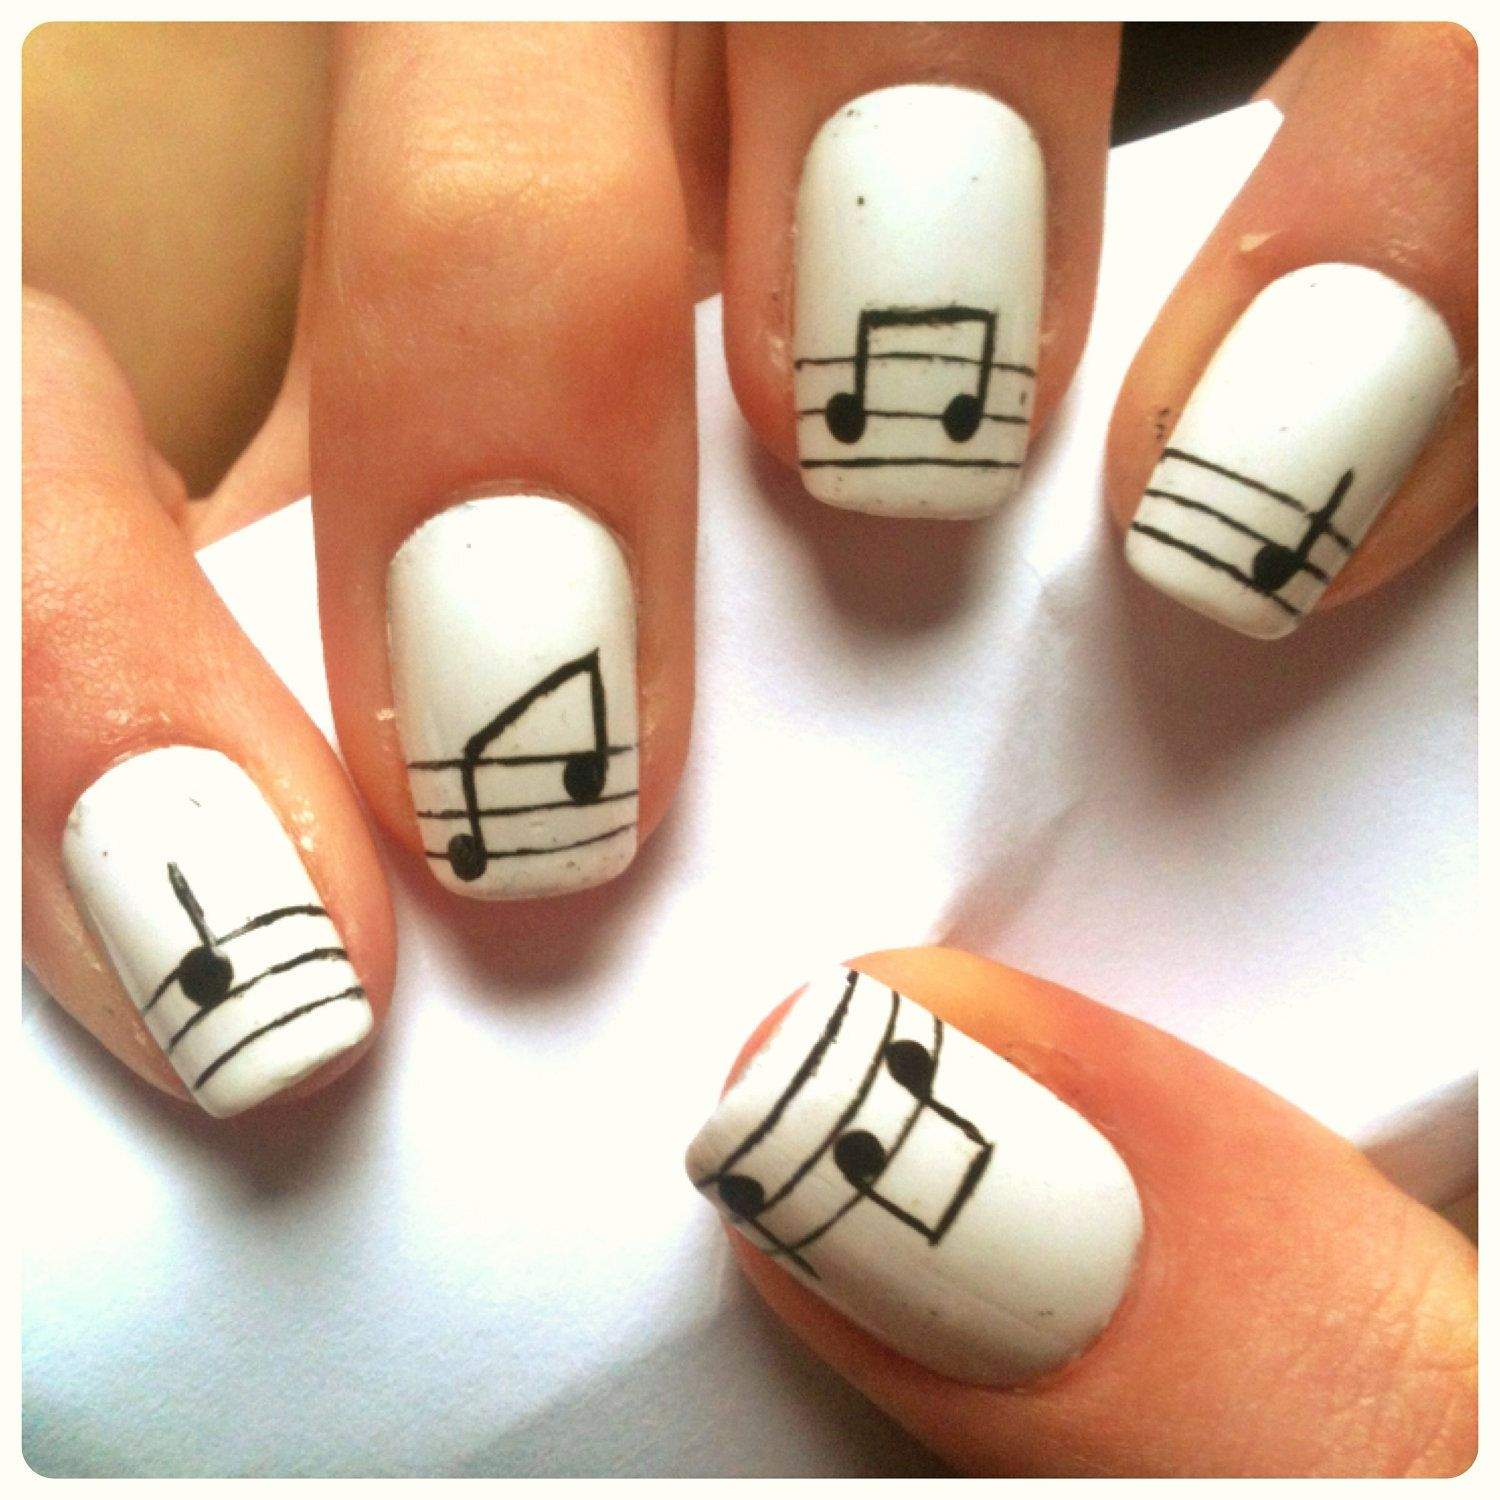 music note nails - Music Note Nails Get On My Body Pinterest Music Note Nails